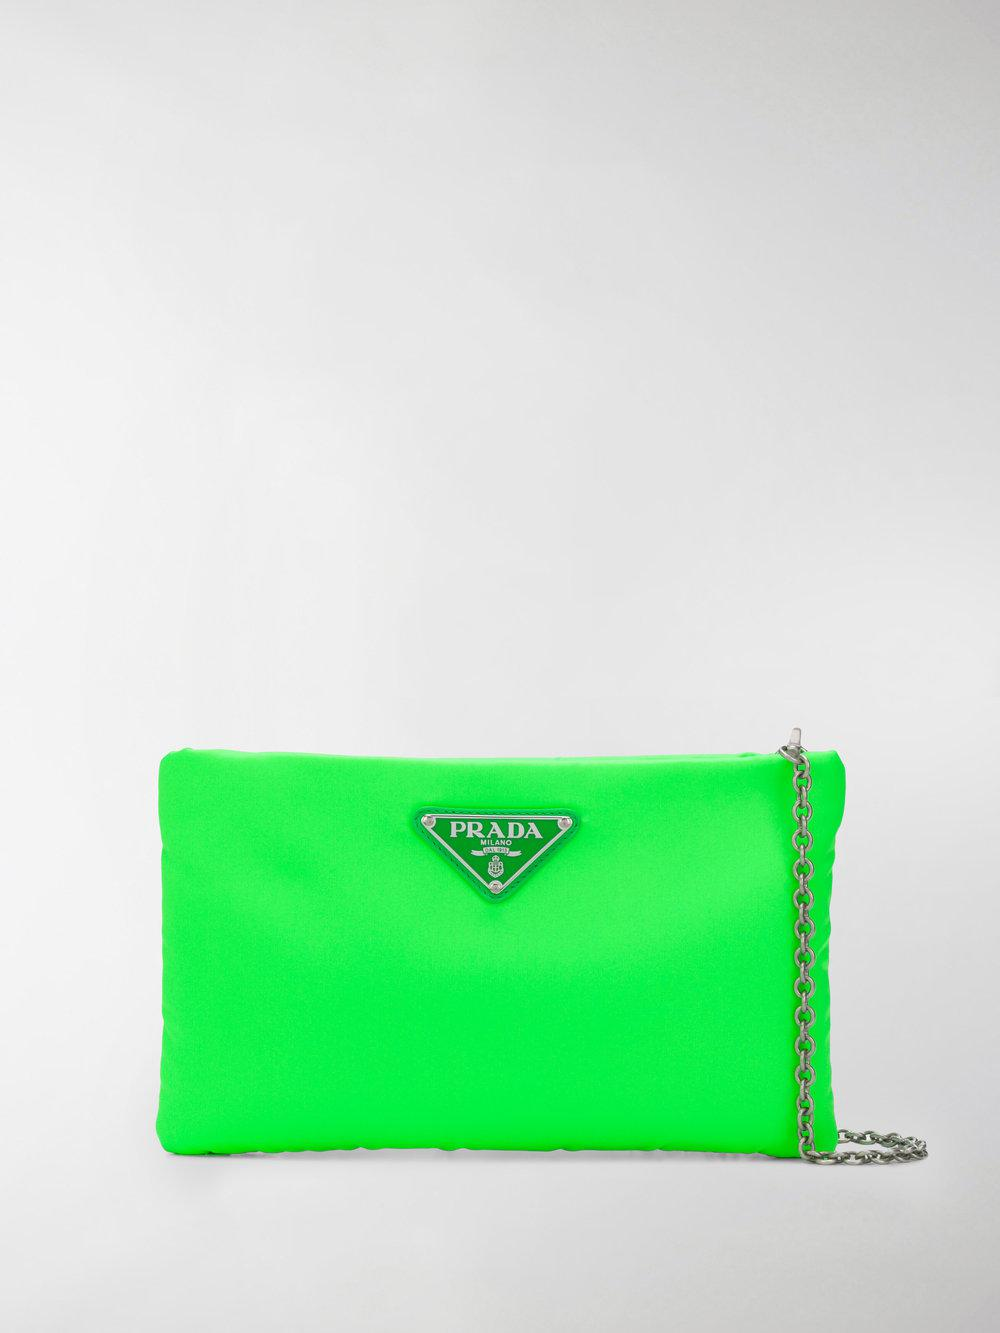 3258f77d1ad9b8 Prada Padded Nylon Clutch Bag in Green - Lyst